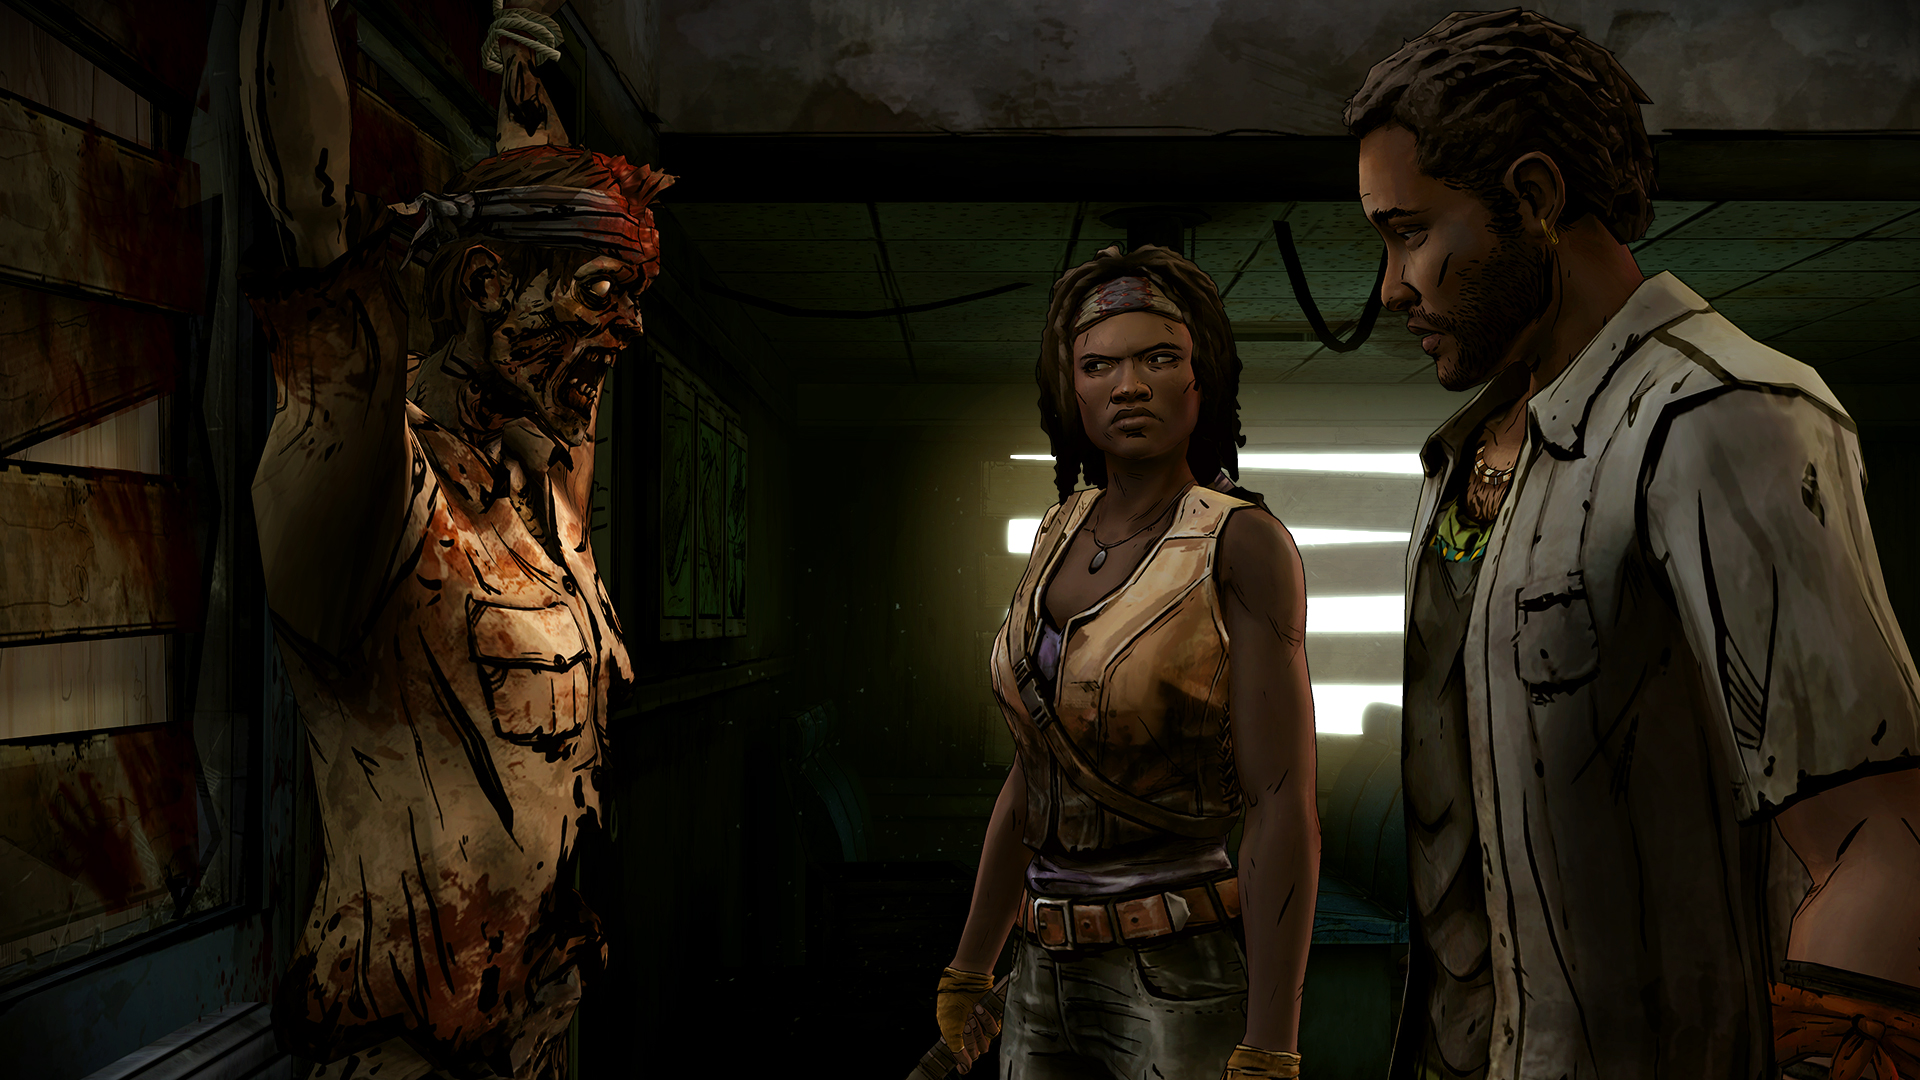 The Walking Dead Michonne A Telltale Miniseries Episode 1 In Too Deep Screenshot 3